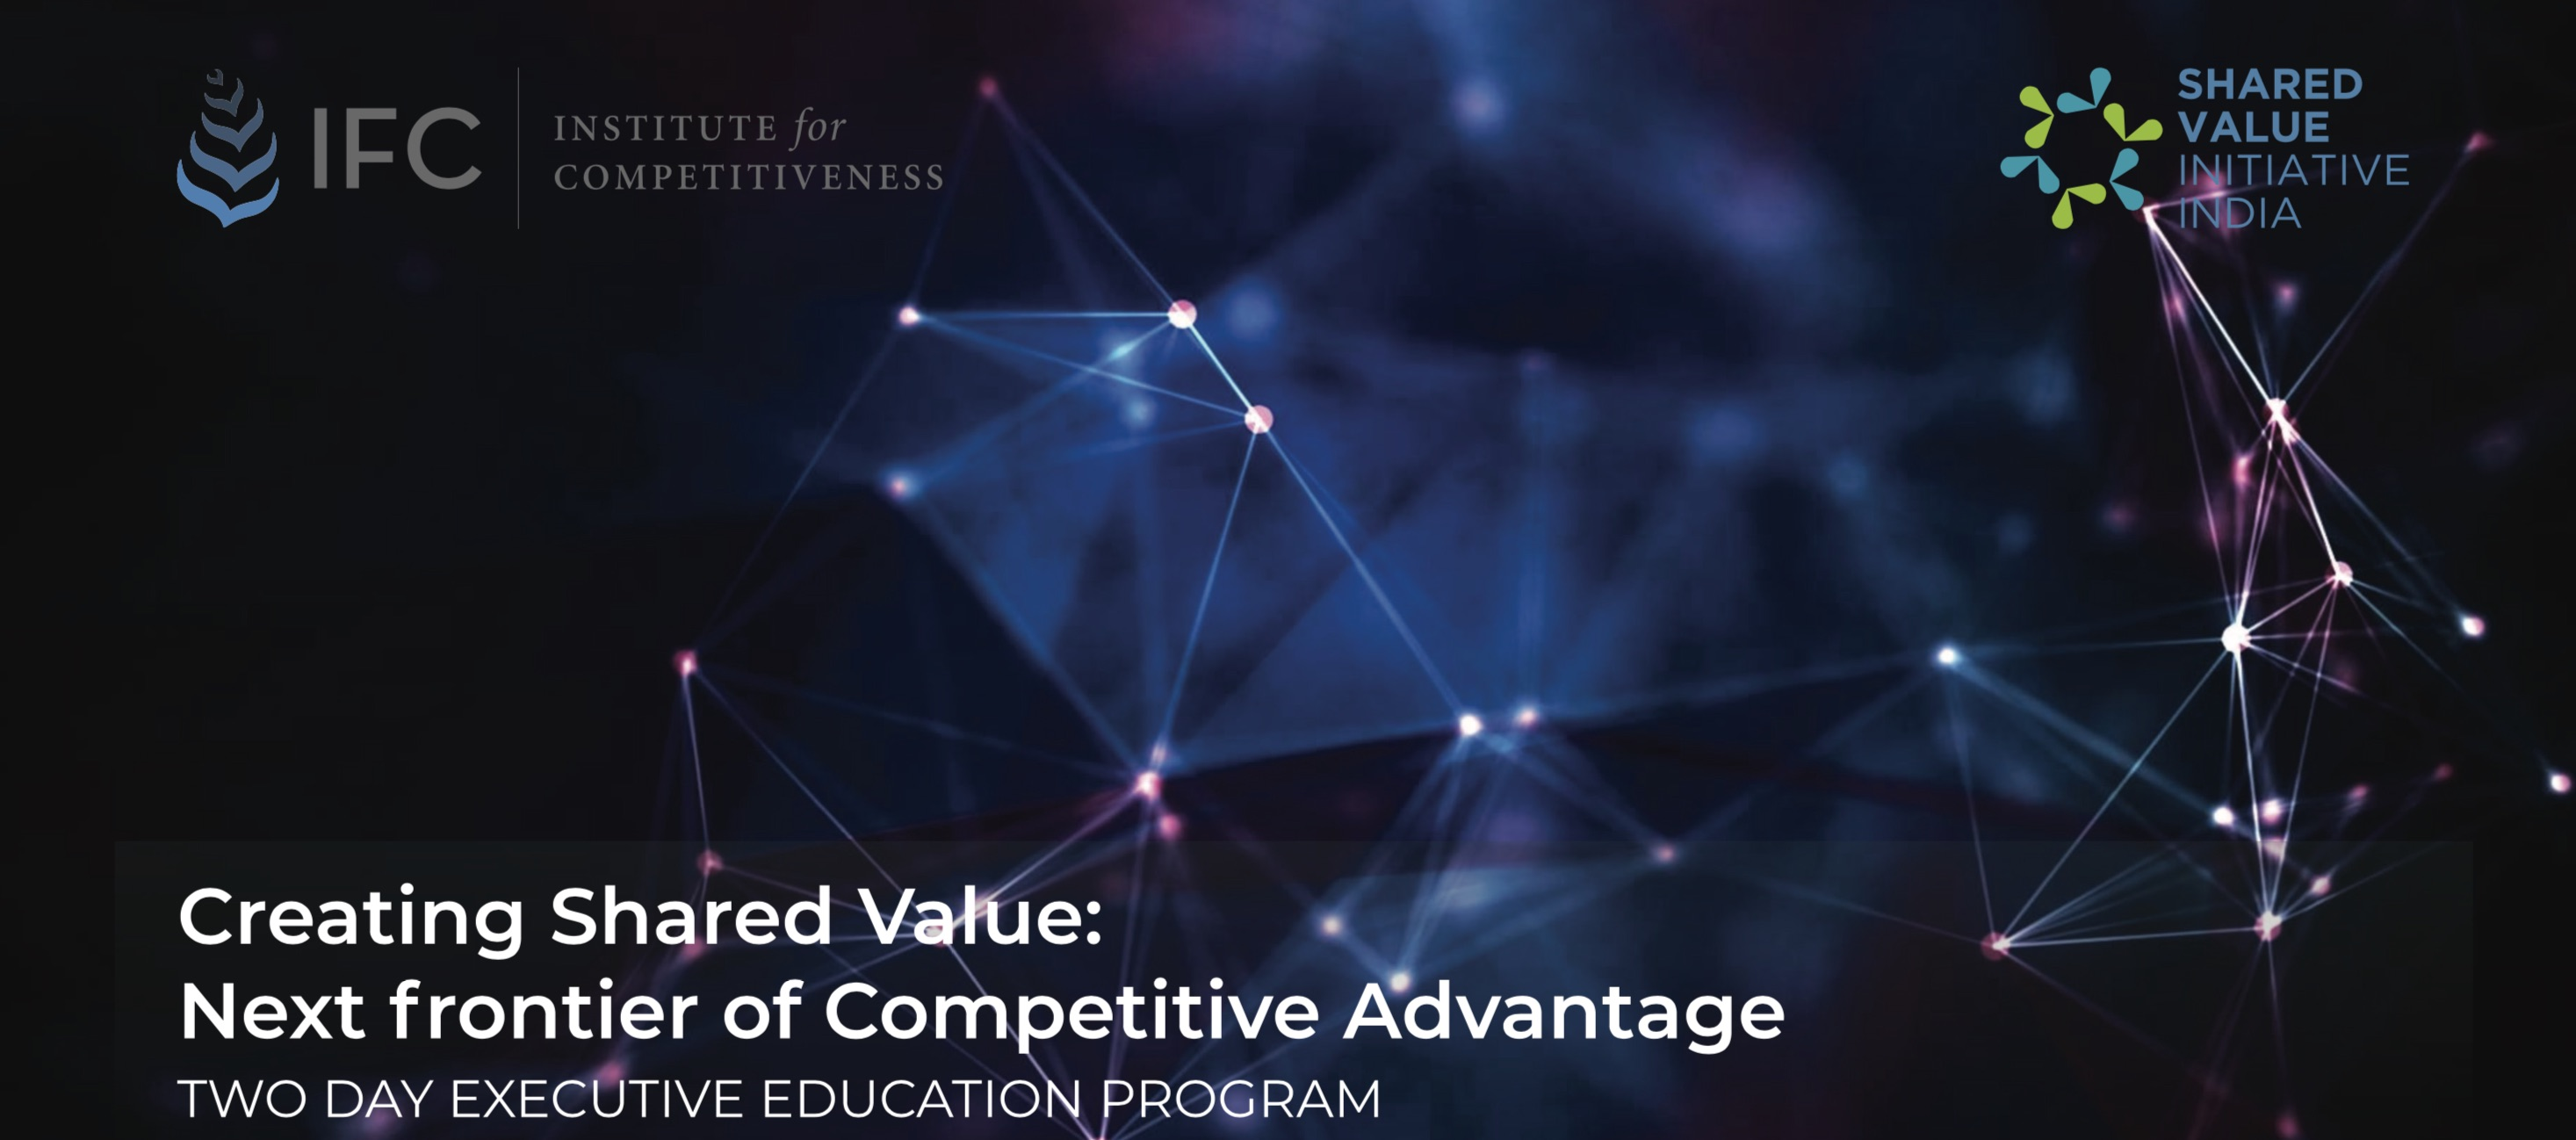 michael porter creating shared value pdf